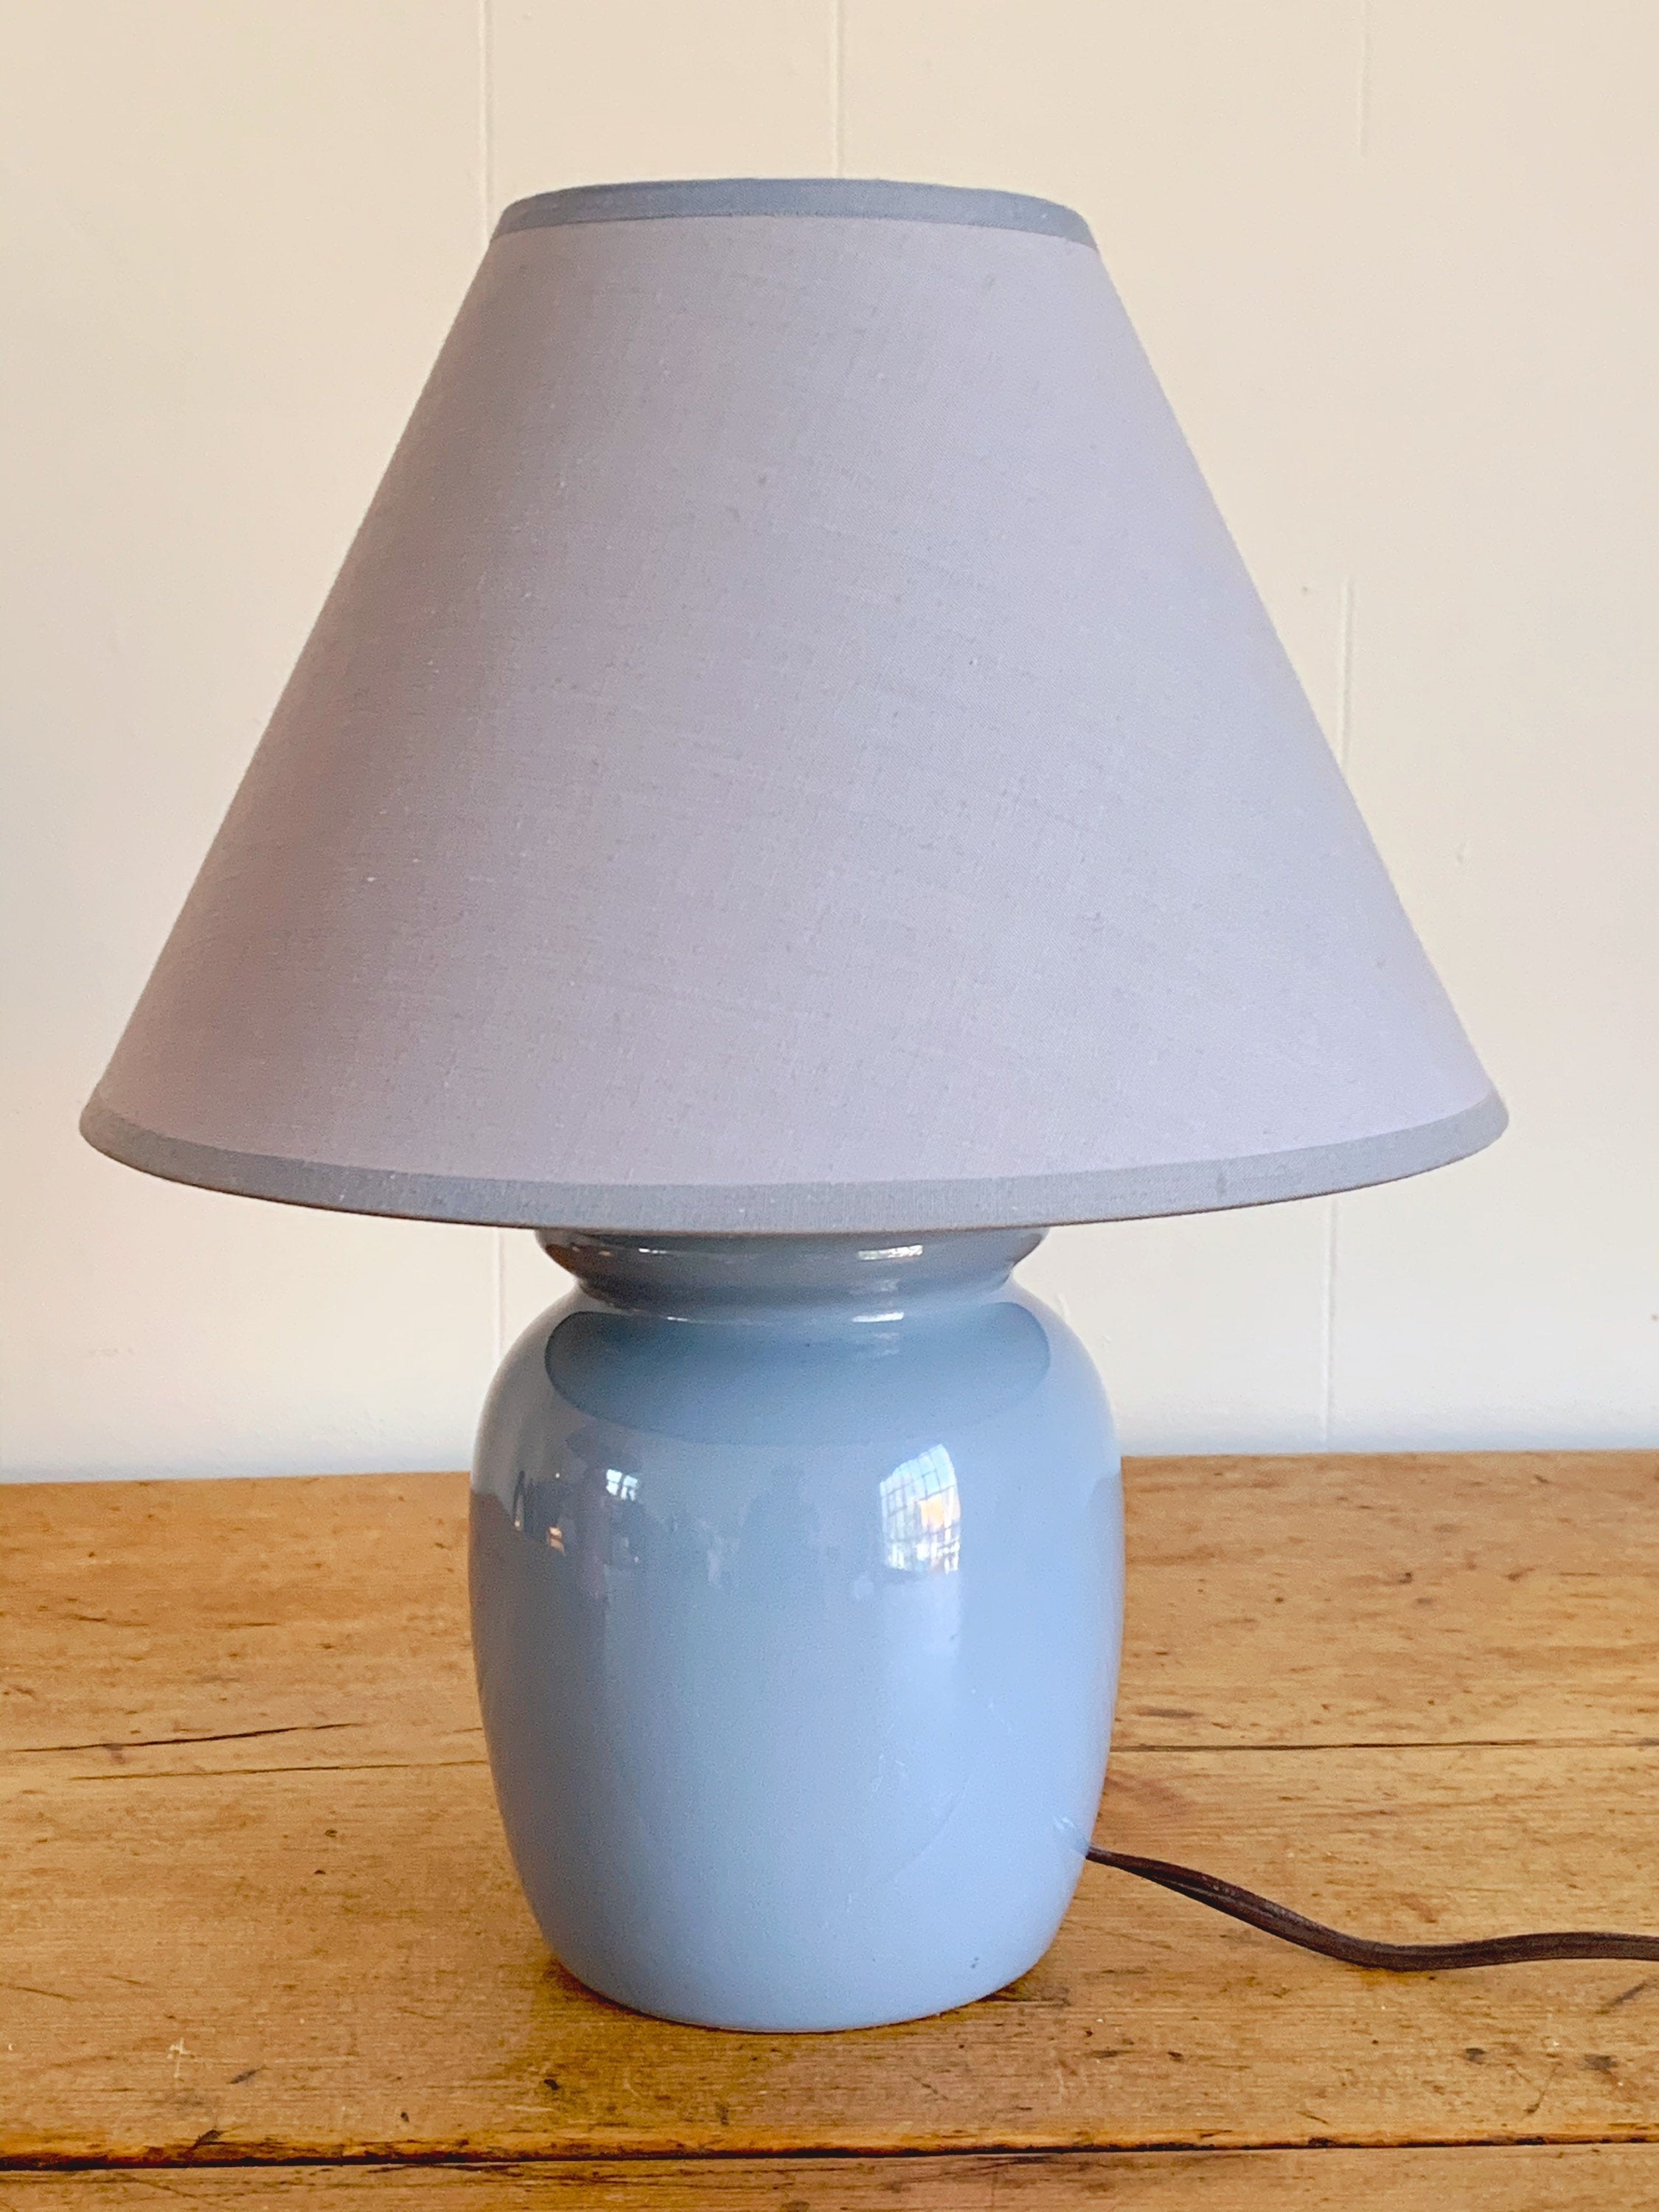 "Vintage Ceramic Table Lamp in Millennial Pink and Powder Blue with Matching Shade | 15"" and 13"" Kids Room Lighting Nursery Decor"